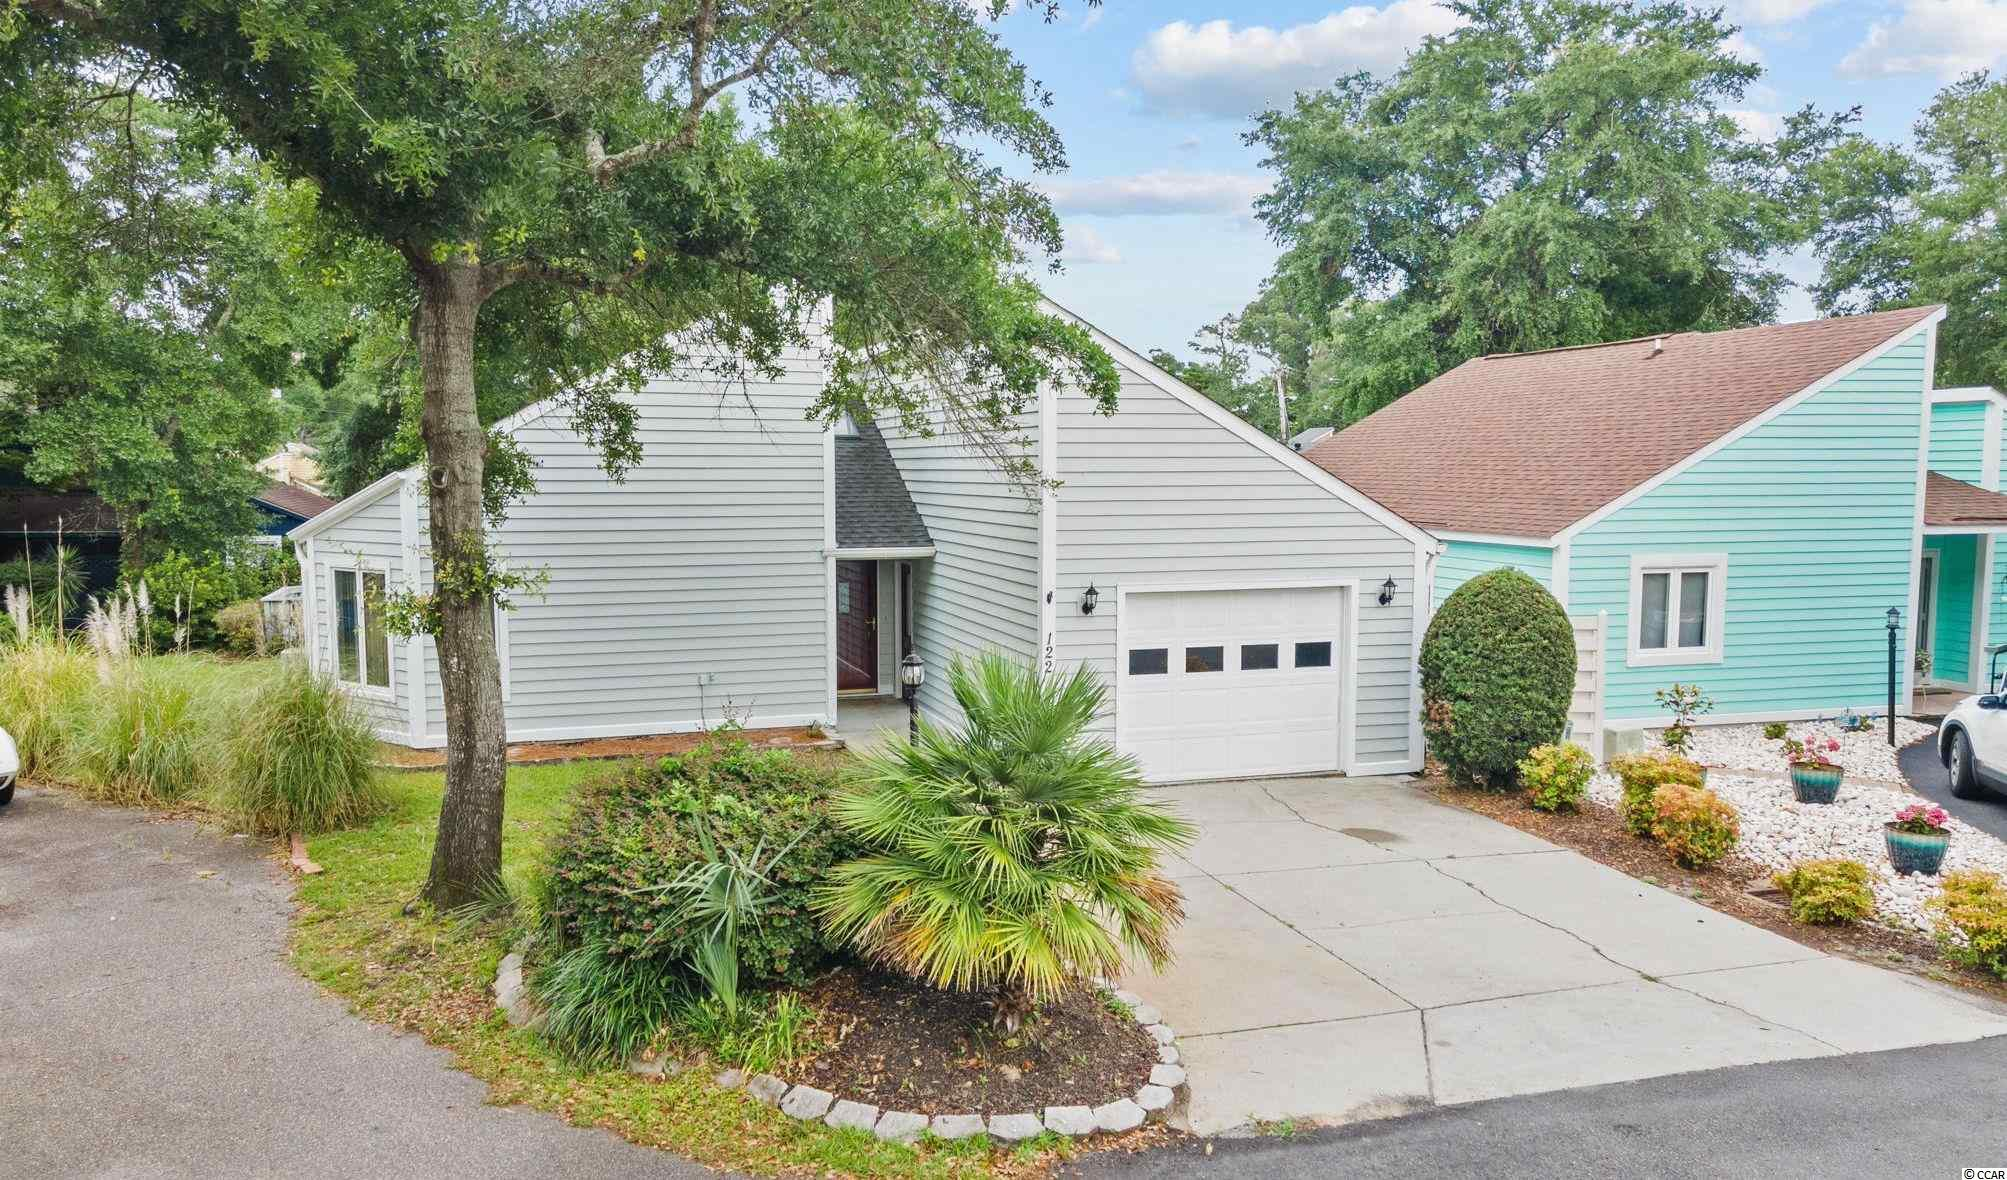 This freshly painted 3 bedroom, 2 bath home in the heart of North Myrtle Beach is located in the Ocean Drive section just a block off Main St. Recent updates include new flooring throughout, new lighting, new exterior paint and updated landscaping. The three spacious bedrooms and great storage make this a wonderful primary or second home. Located in Tilghman Woods you can easily take the golf cart to all NMB has to offer. Being East of 17 and just minutes from the beach, or shopping at  The Shoppes on Main, enjoying festivals and Music on Main are some of the pleasures this location will bring. The home offers a wonderful deck to enjoy lazy afternoons of entertaining and a private escape to just relax and enjoy all the good things living in NMB has to offer. Make plans to see this home today.